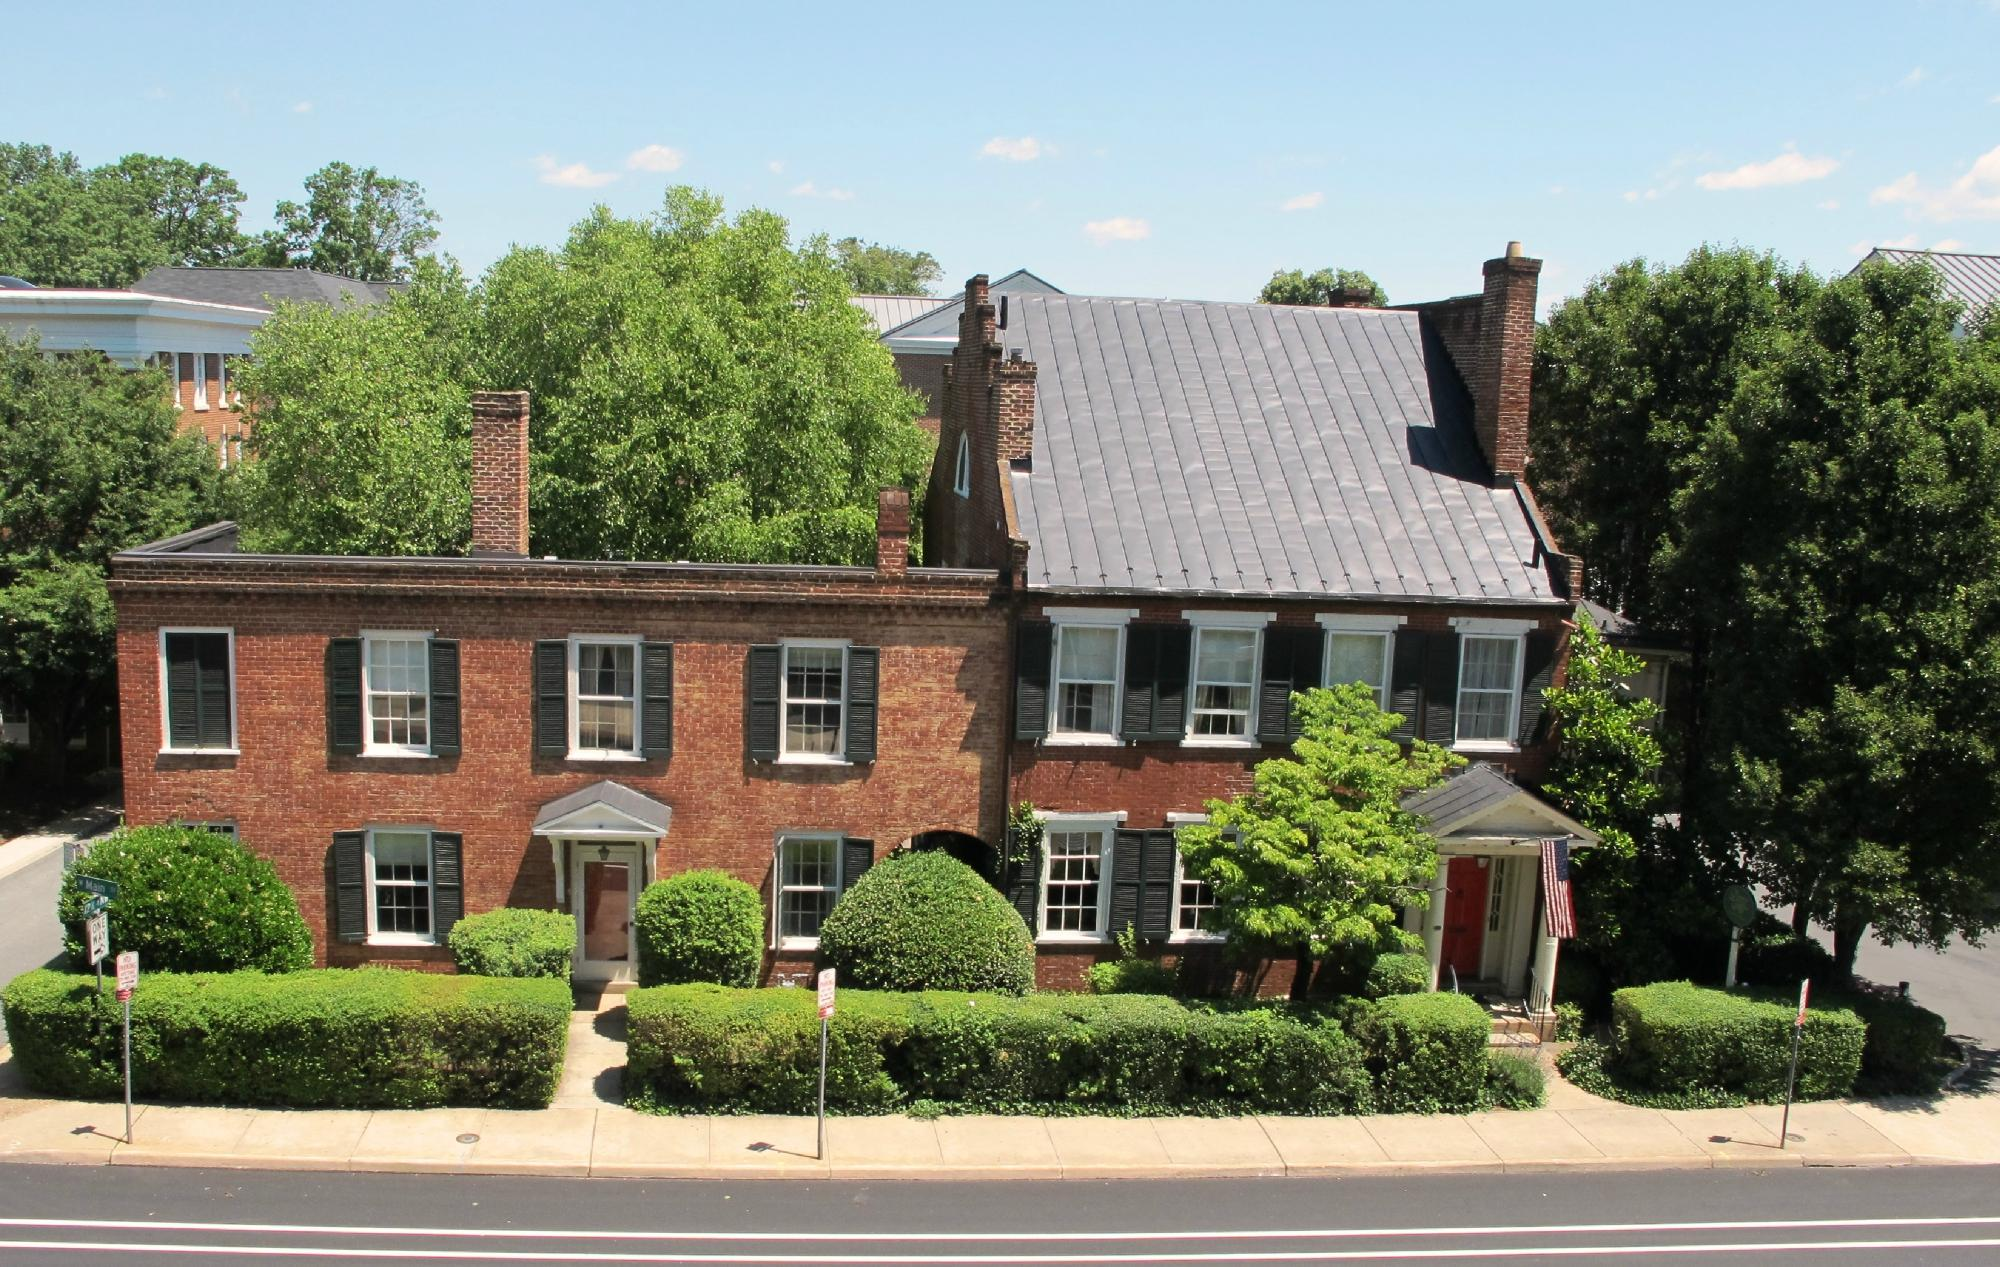 The Dinsmore House Bed & Breakfast